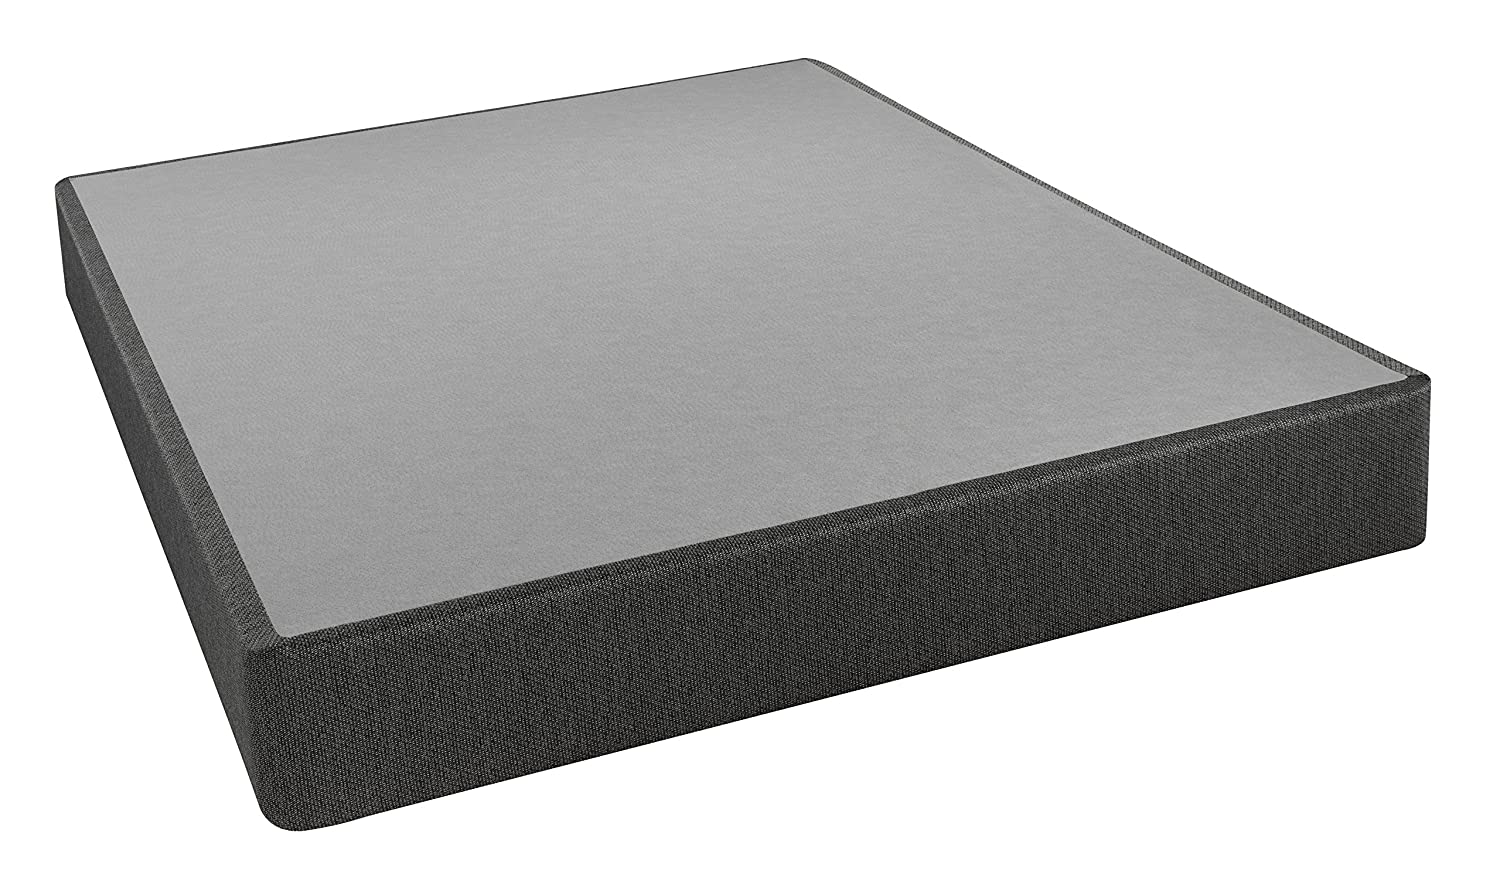 Beautyrest Platinum Foundation, Full, 9 inch Simmons Bedding Company 700744119-5030